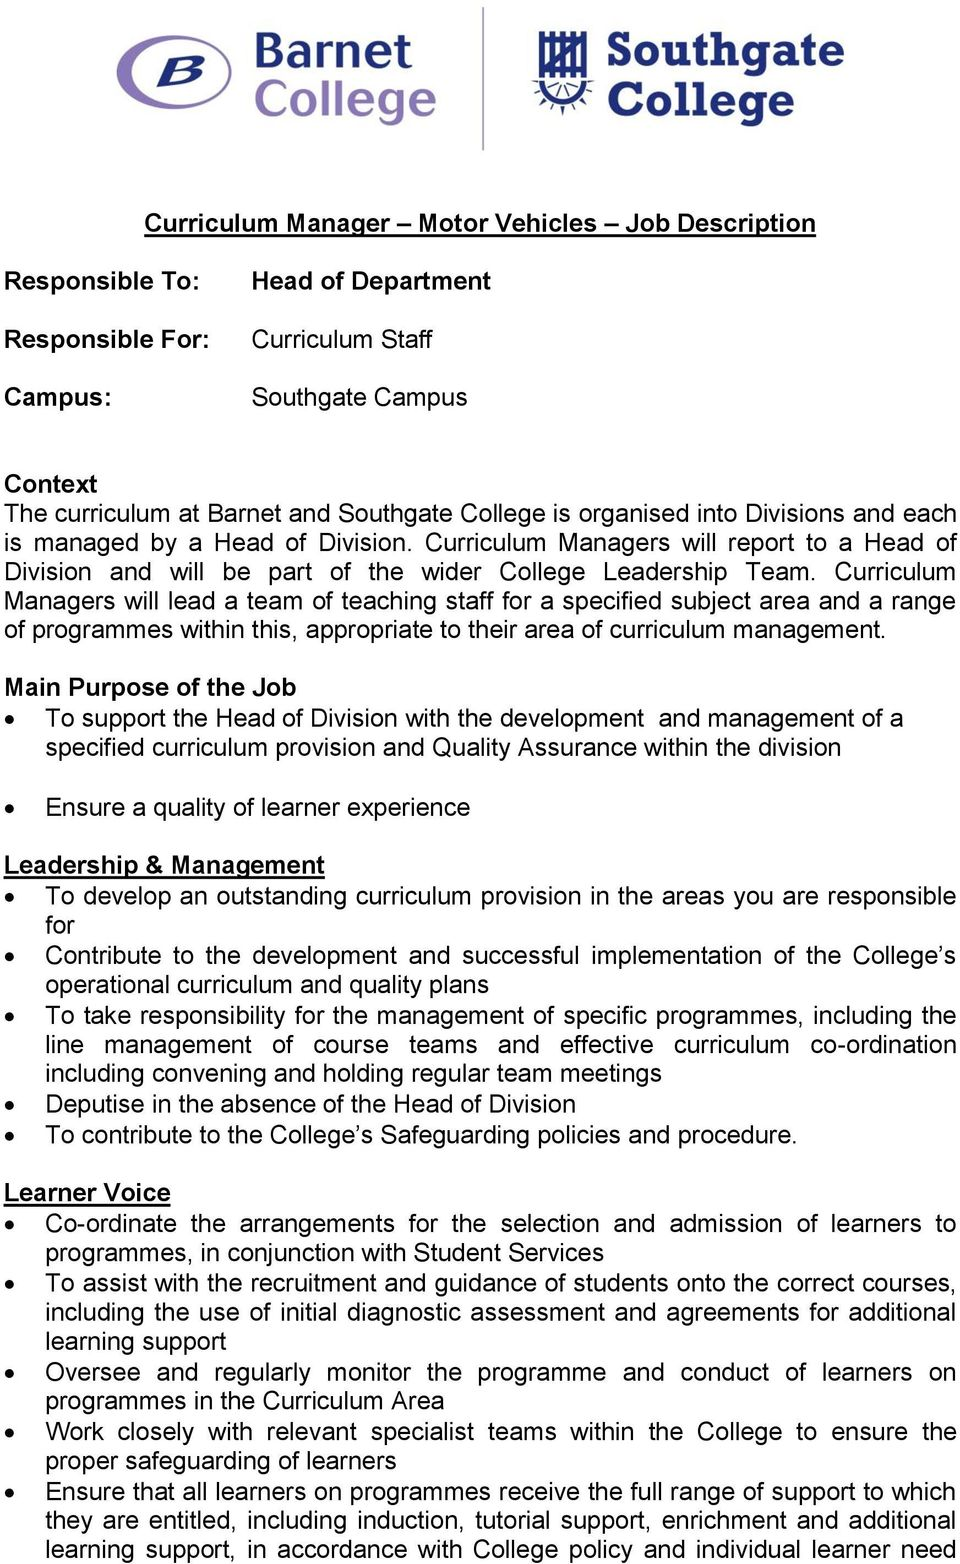 Curriculum Managers will lead a team of teaching staff for a specified subject area and a range of programmes within this, appropriate to their area of curriculum management.